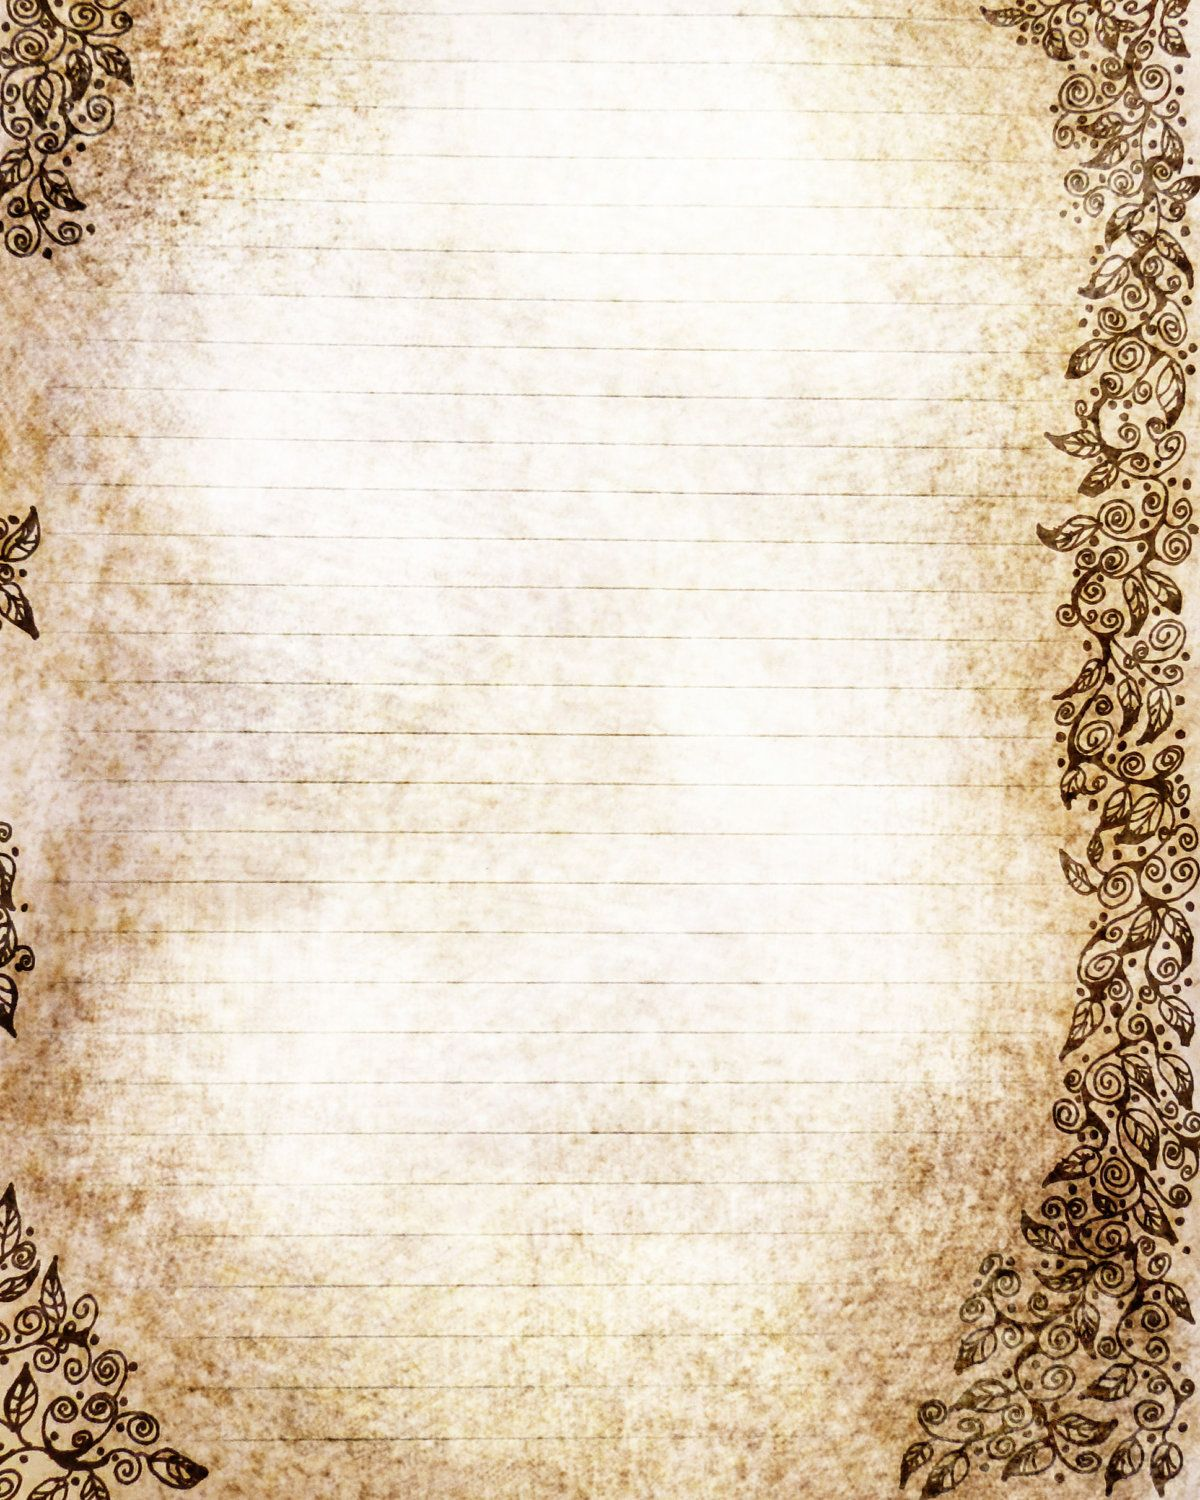 aged parchment writing paper